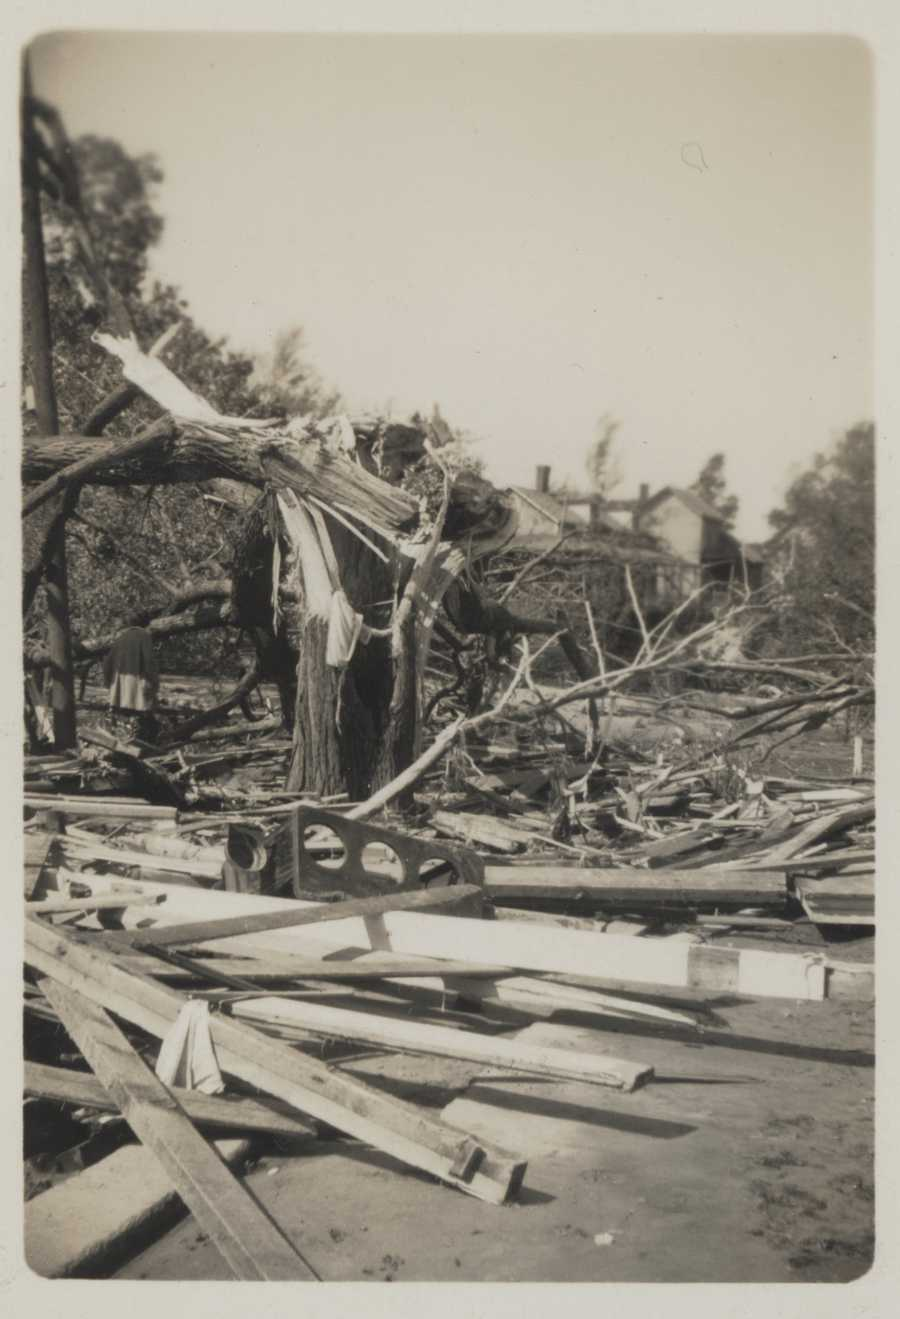 A very large tree shattered by wind and storm surge in Conimicut, Rhode Island. Remains of some building in the foreground. New England Hurricane of 1938.